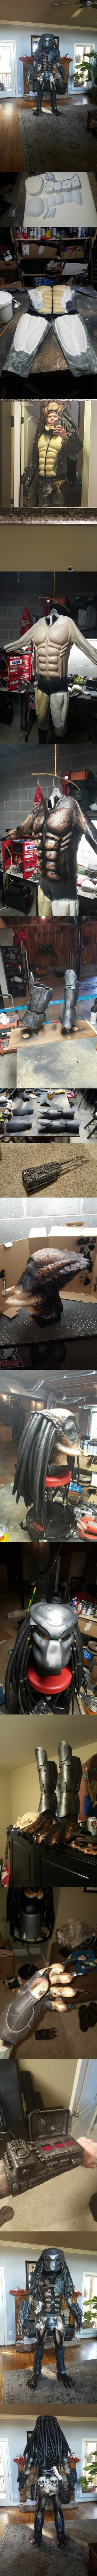 Friend spent months creating a predator costume from almost scratch.